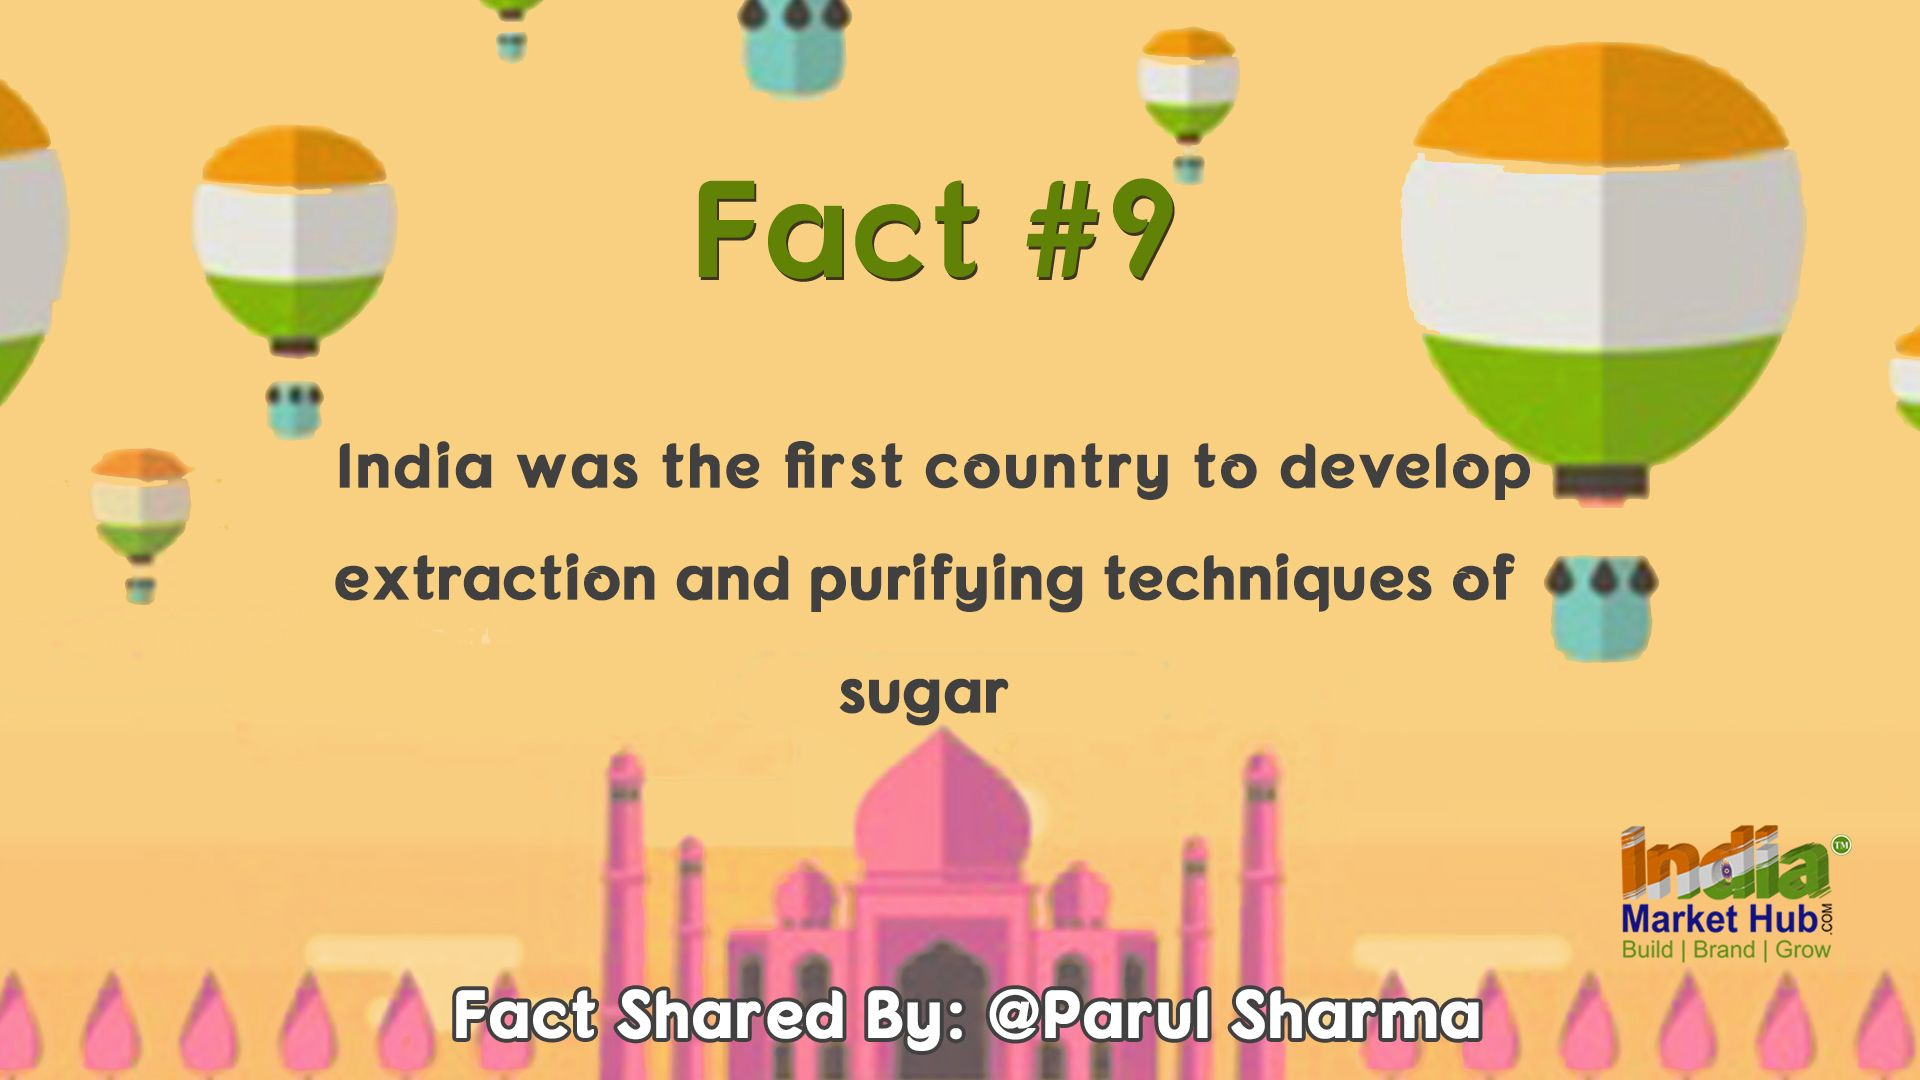 Here we go! We're pleased to announce the winner for the fact #10 #ParulSharma The contest has now moved to the next level Keep participating with More zeal and enthusiasm! & Keep winning exciting prizes!! Share more facts in the comments below to win! #IndiaMarketHub